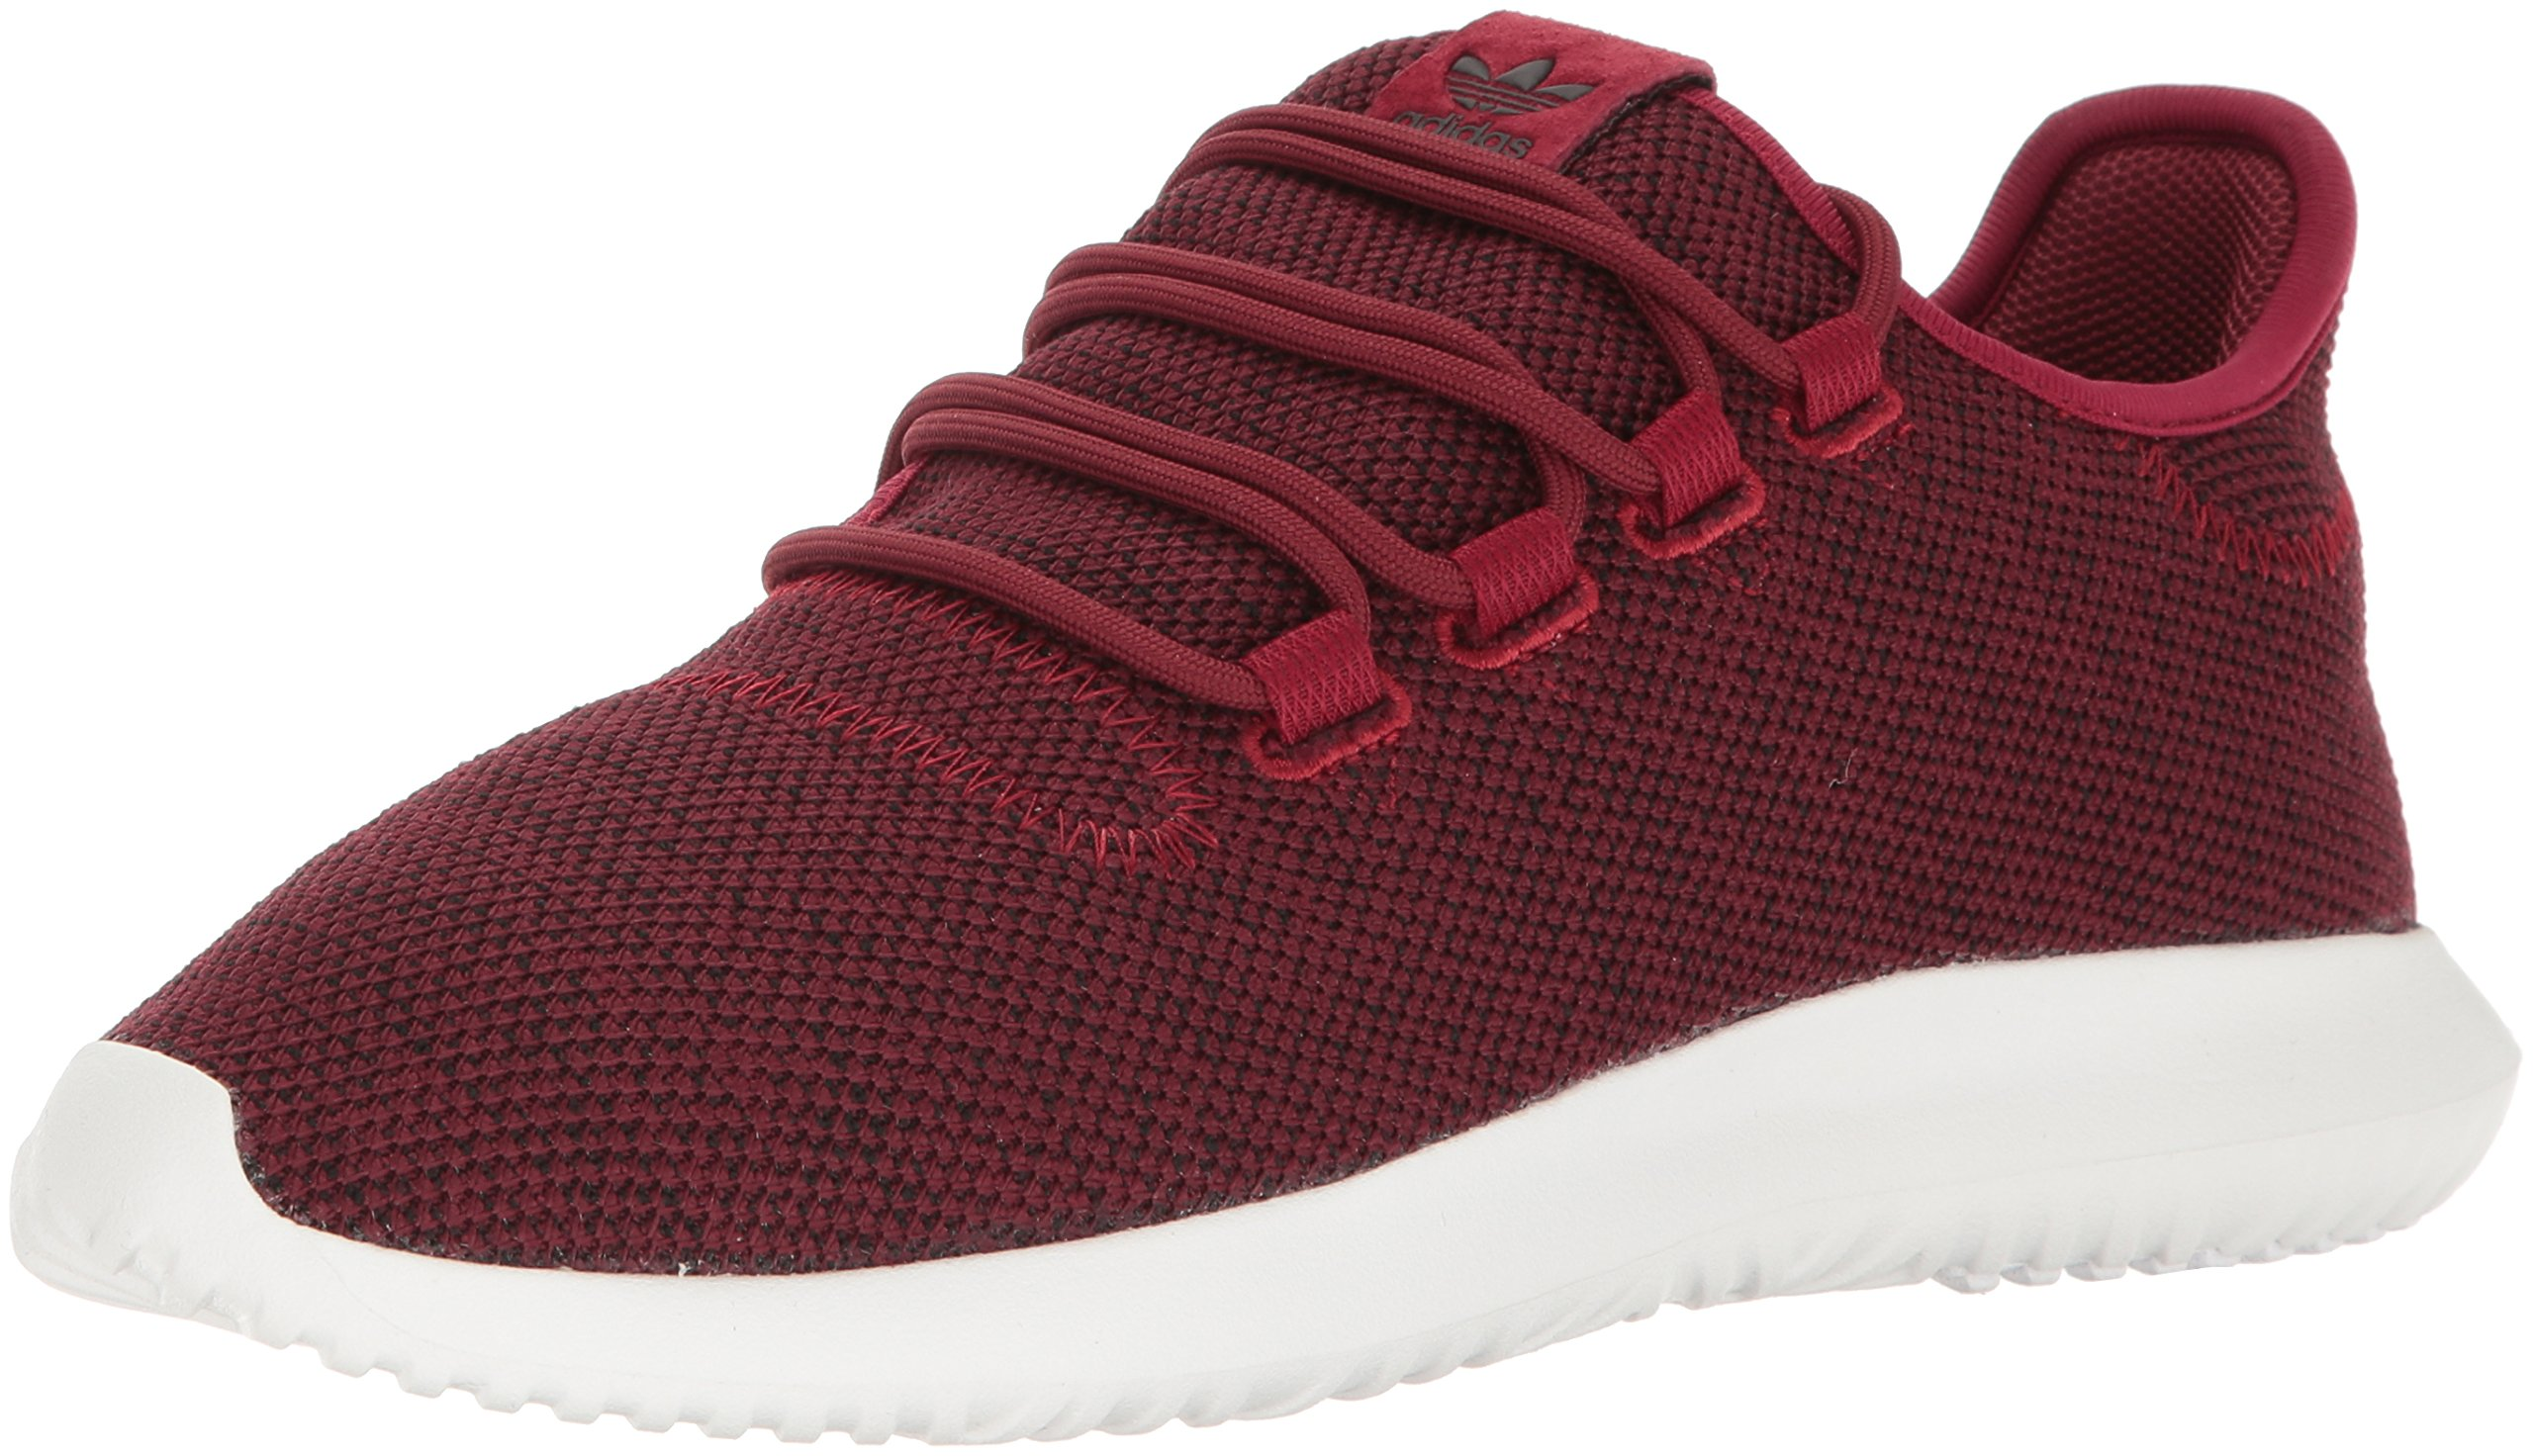 adidas Originals Men's Tubular Shadow Sneaker Running Shoe, Burgundy/Black/White, 13 M US by adidas Originals